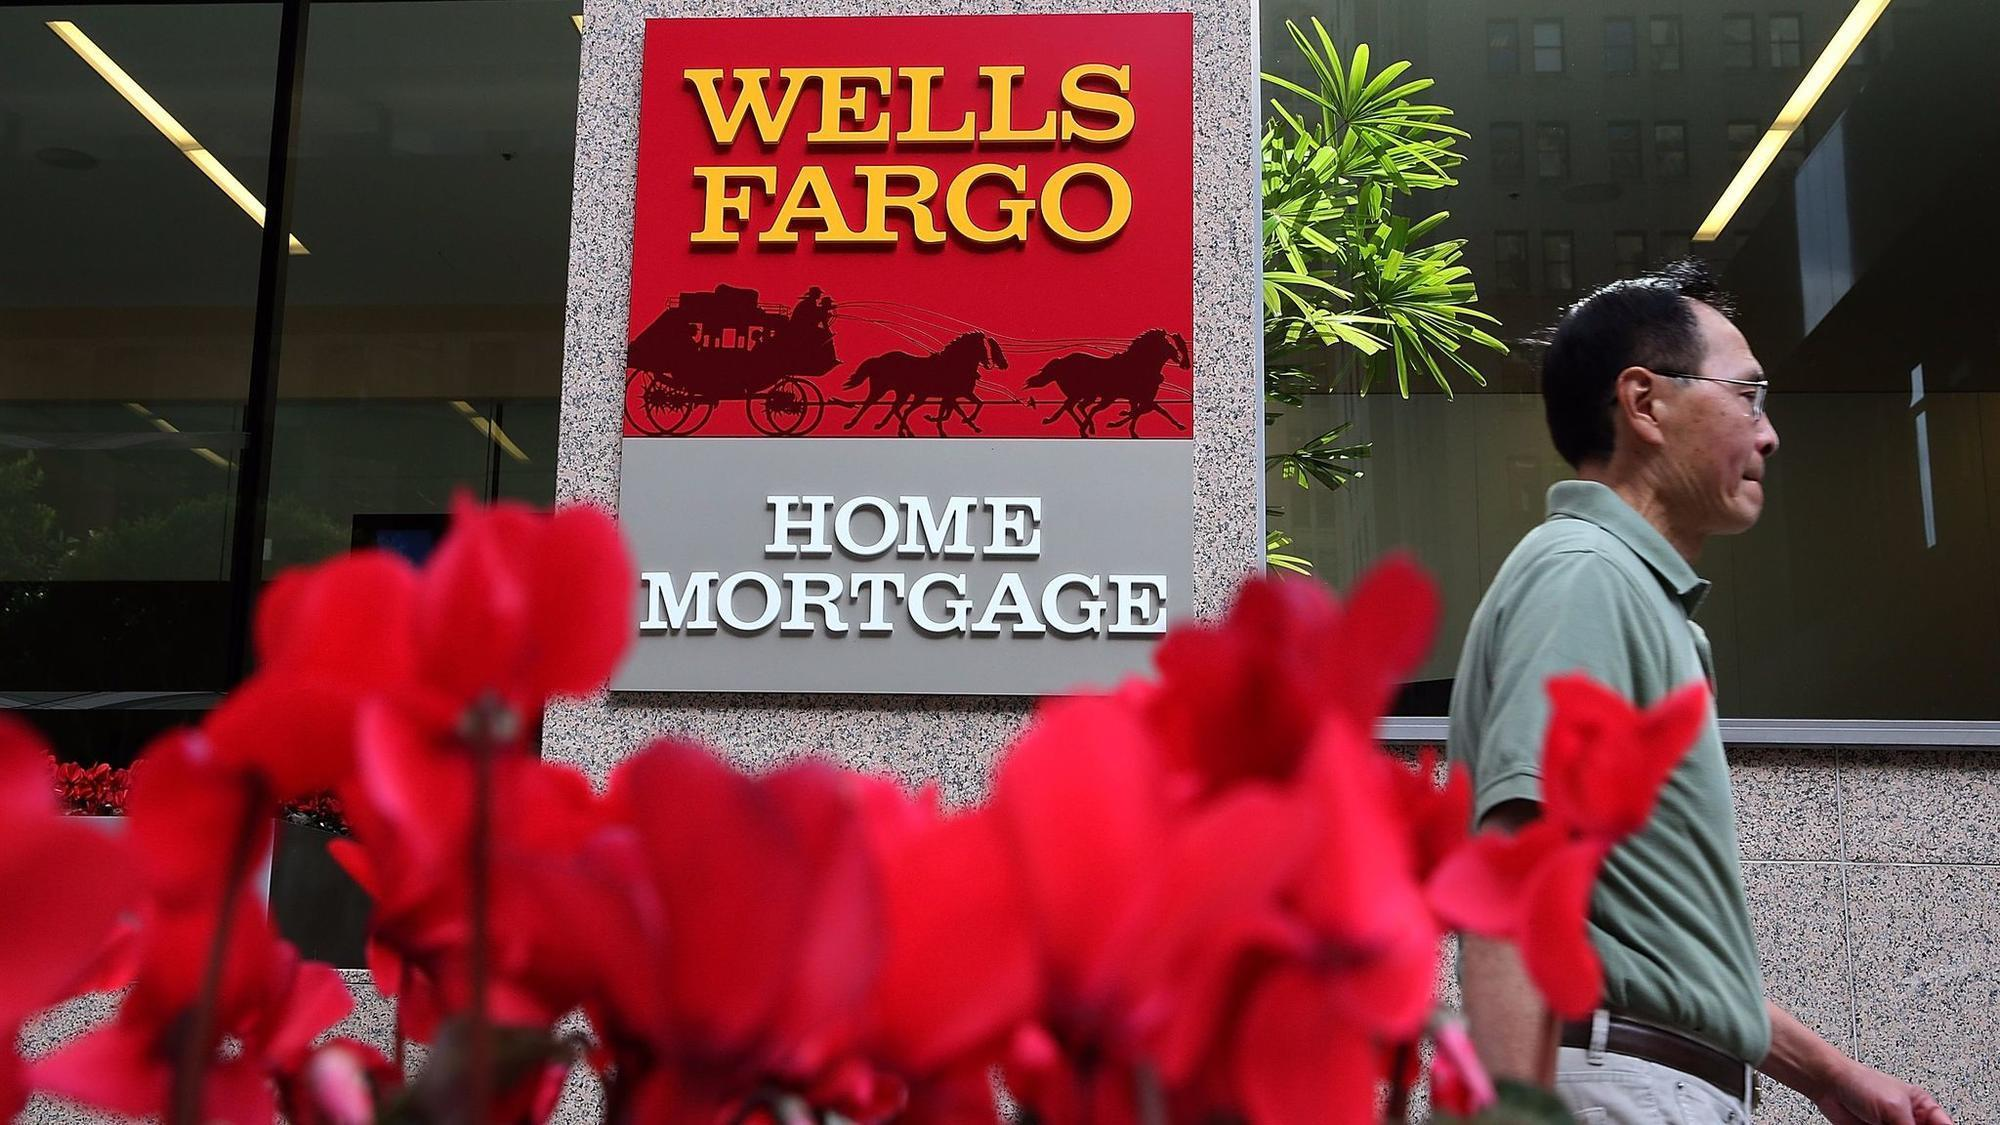 Former banker sues Wells Fargo, says he blew whistle on mortgage practices